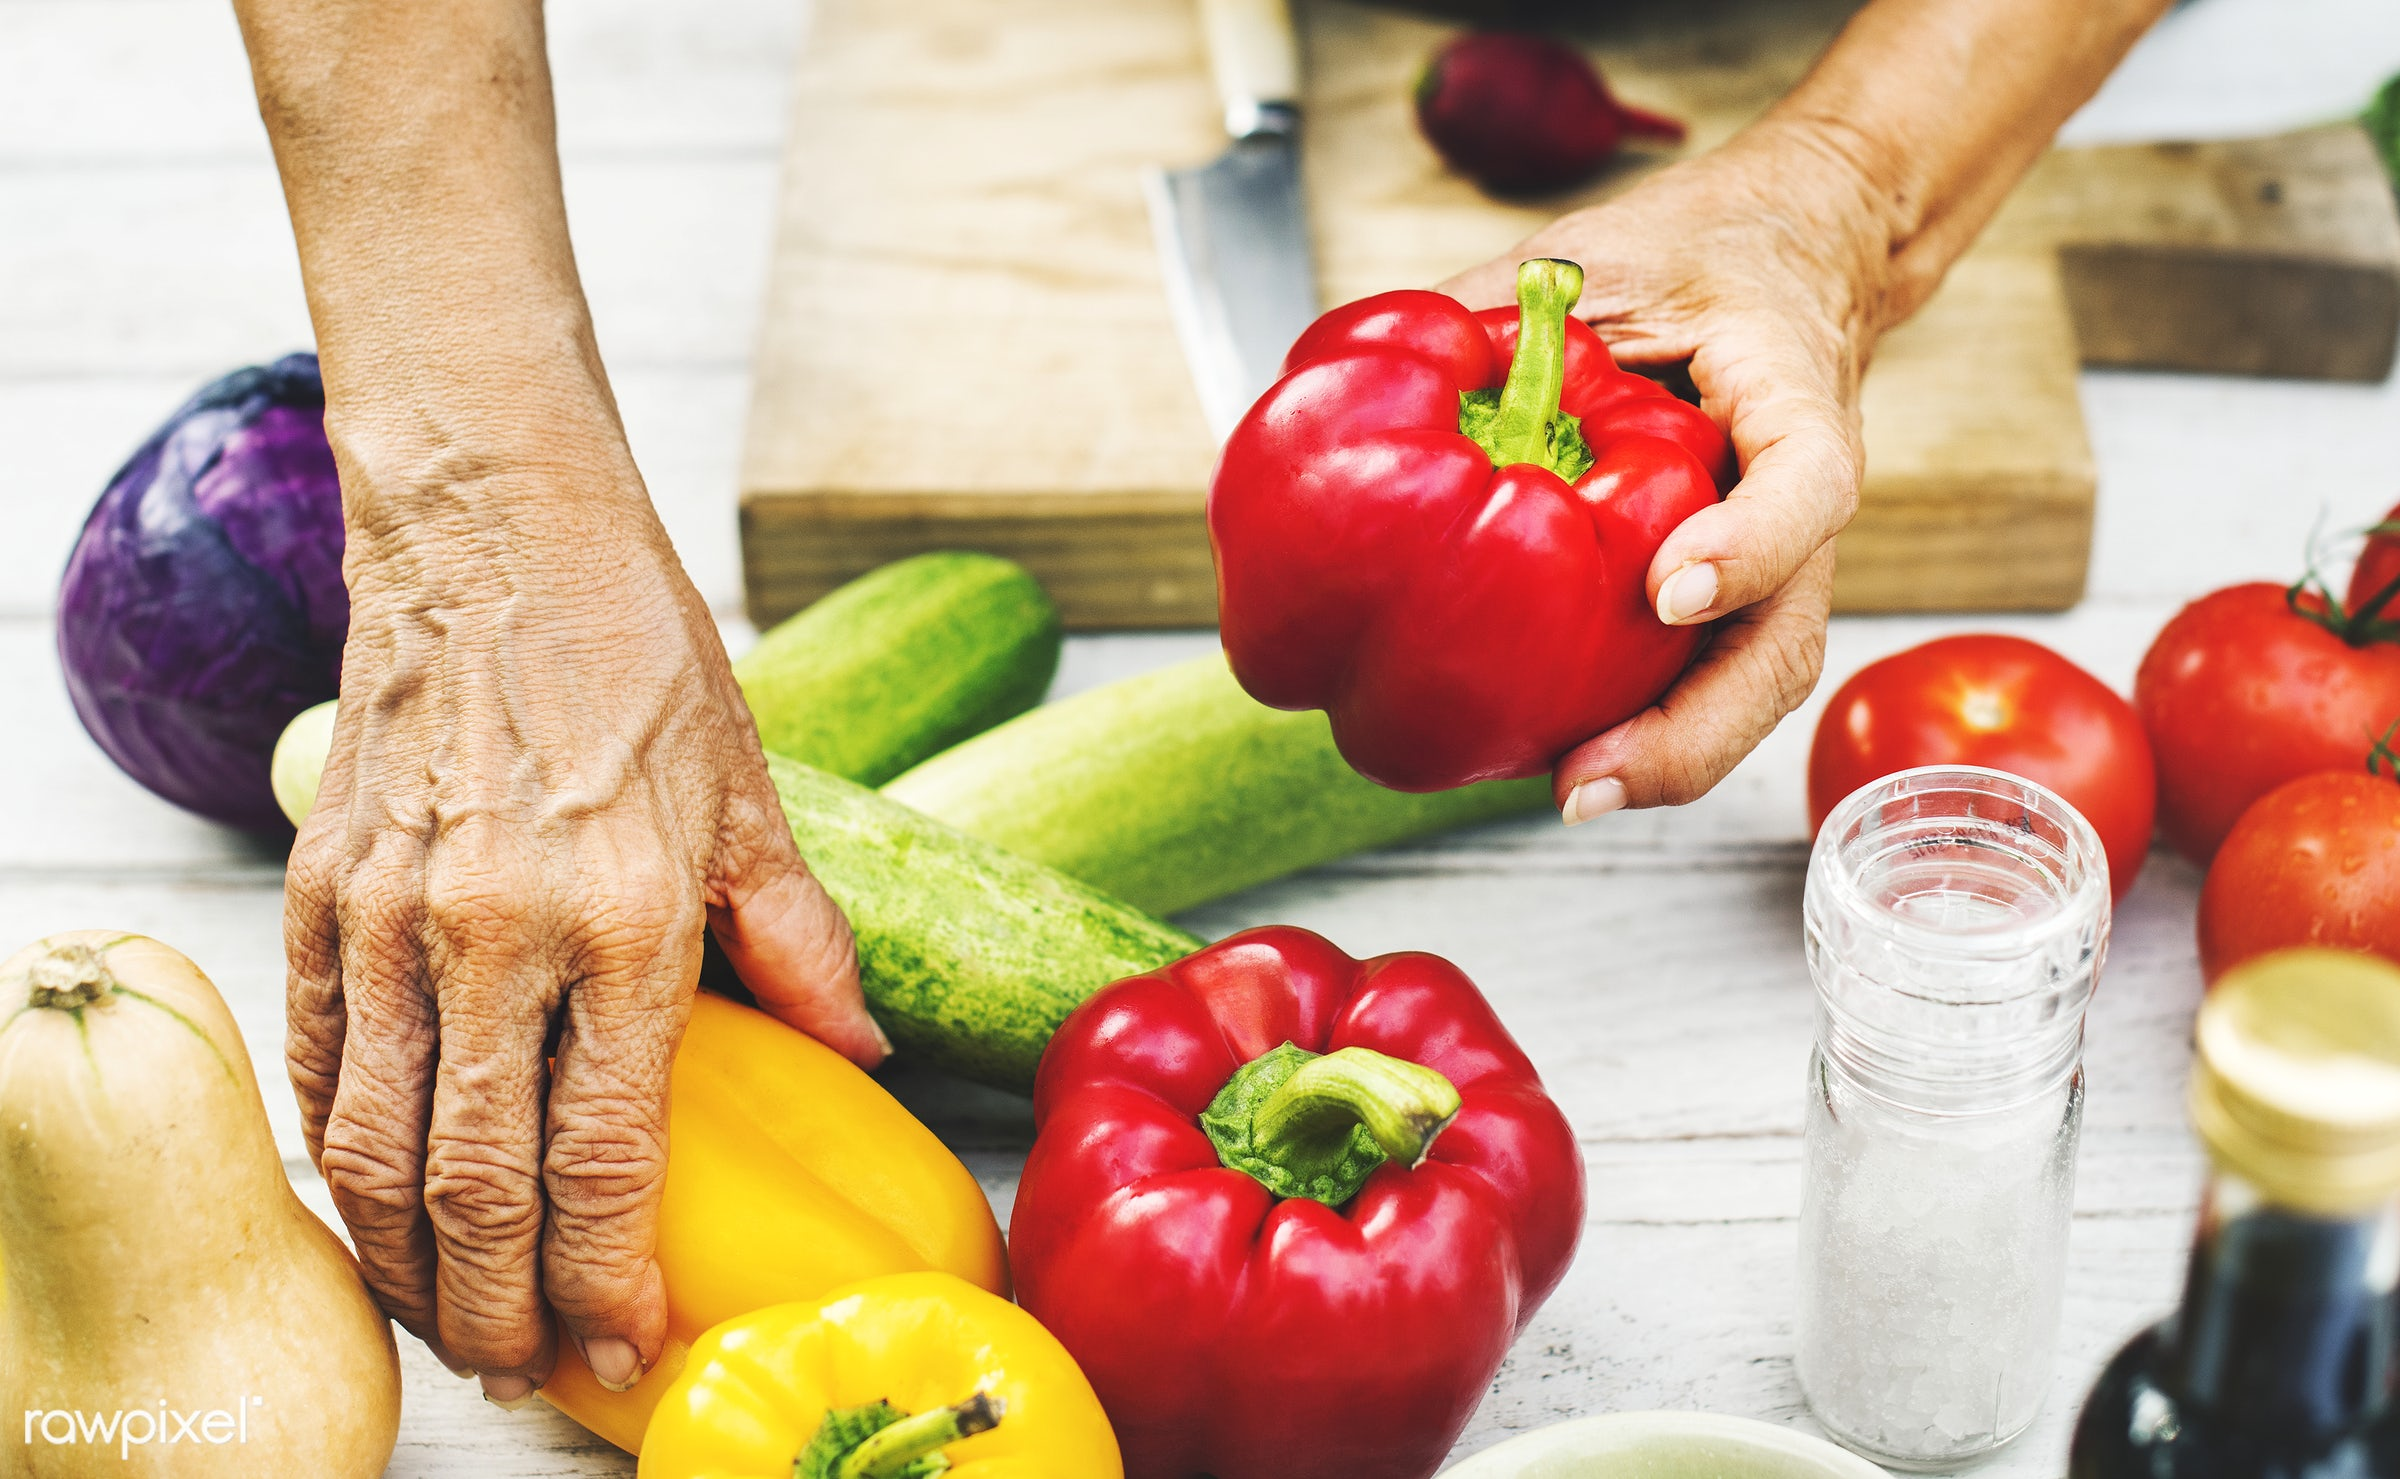 holding, bell pepper, ingredients, real, hands, fresh, showing, pick, choose, closeup, healthcare, nutrients, organic, food...